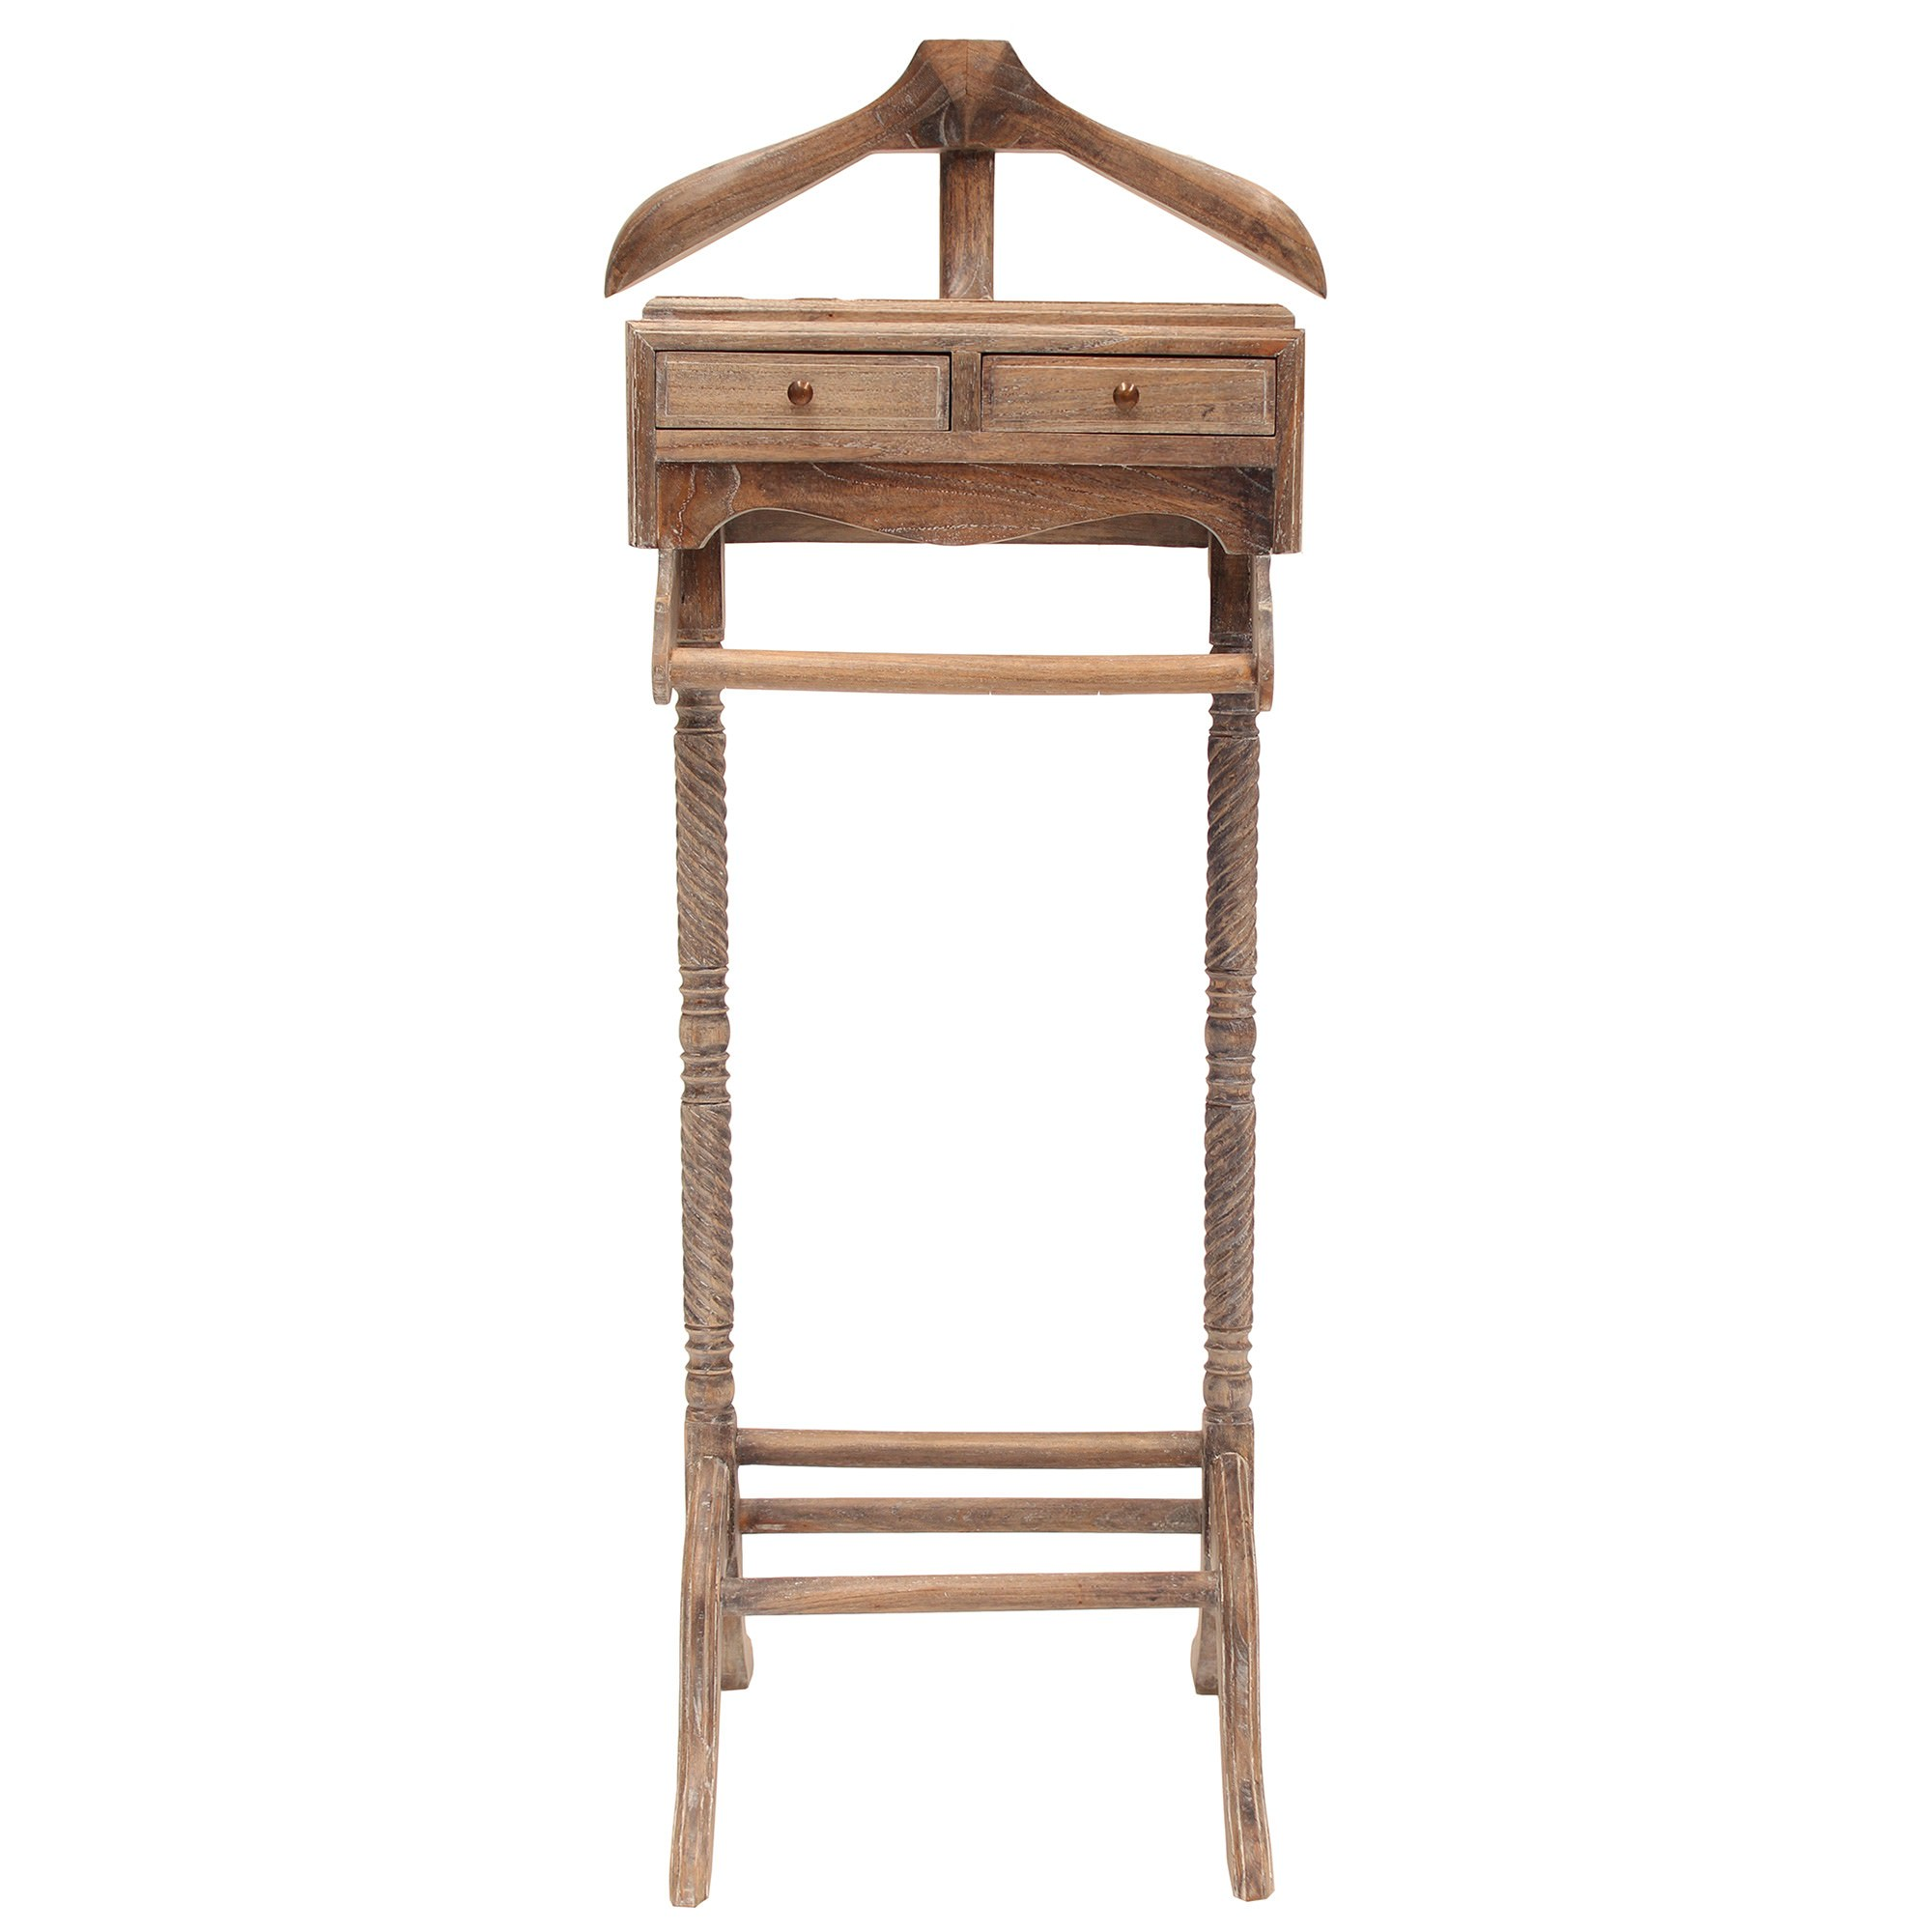 Recco Hand Crafted Mahogany Valet Stand, Weathered Oak